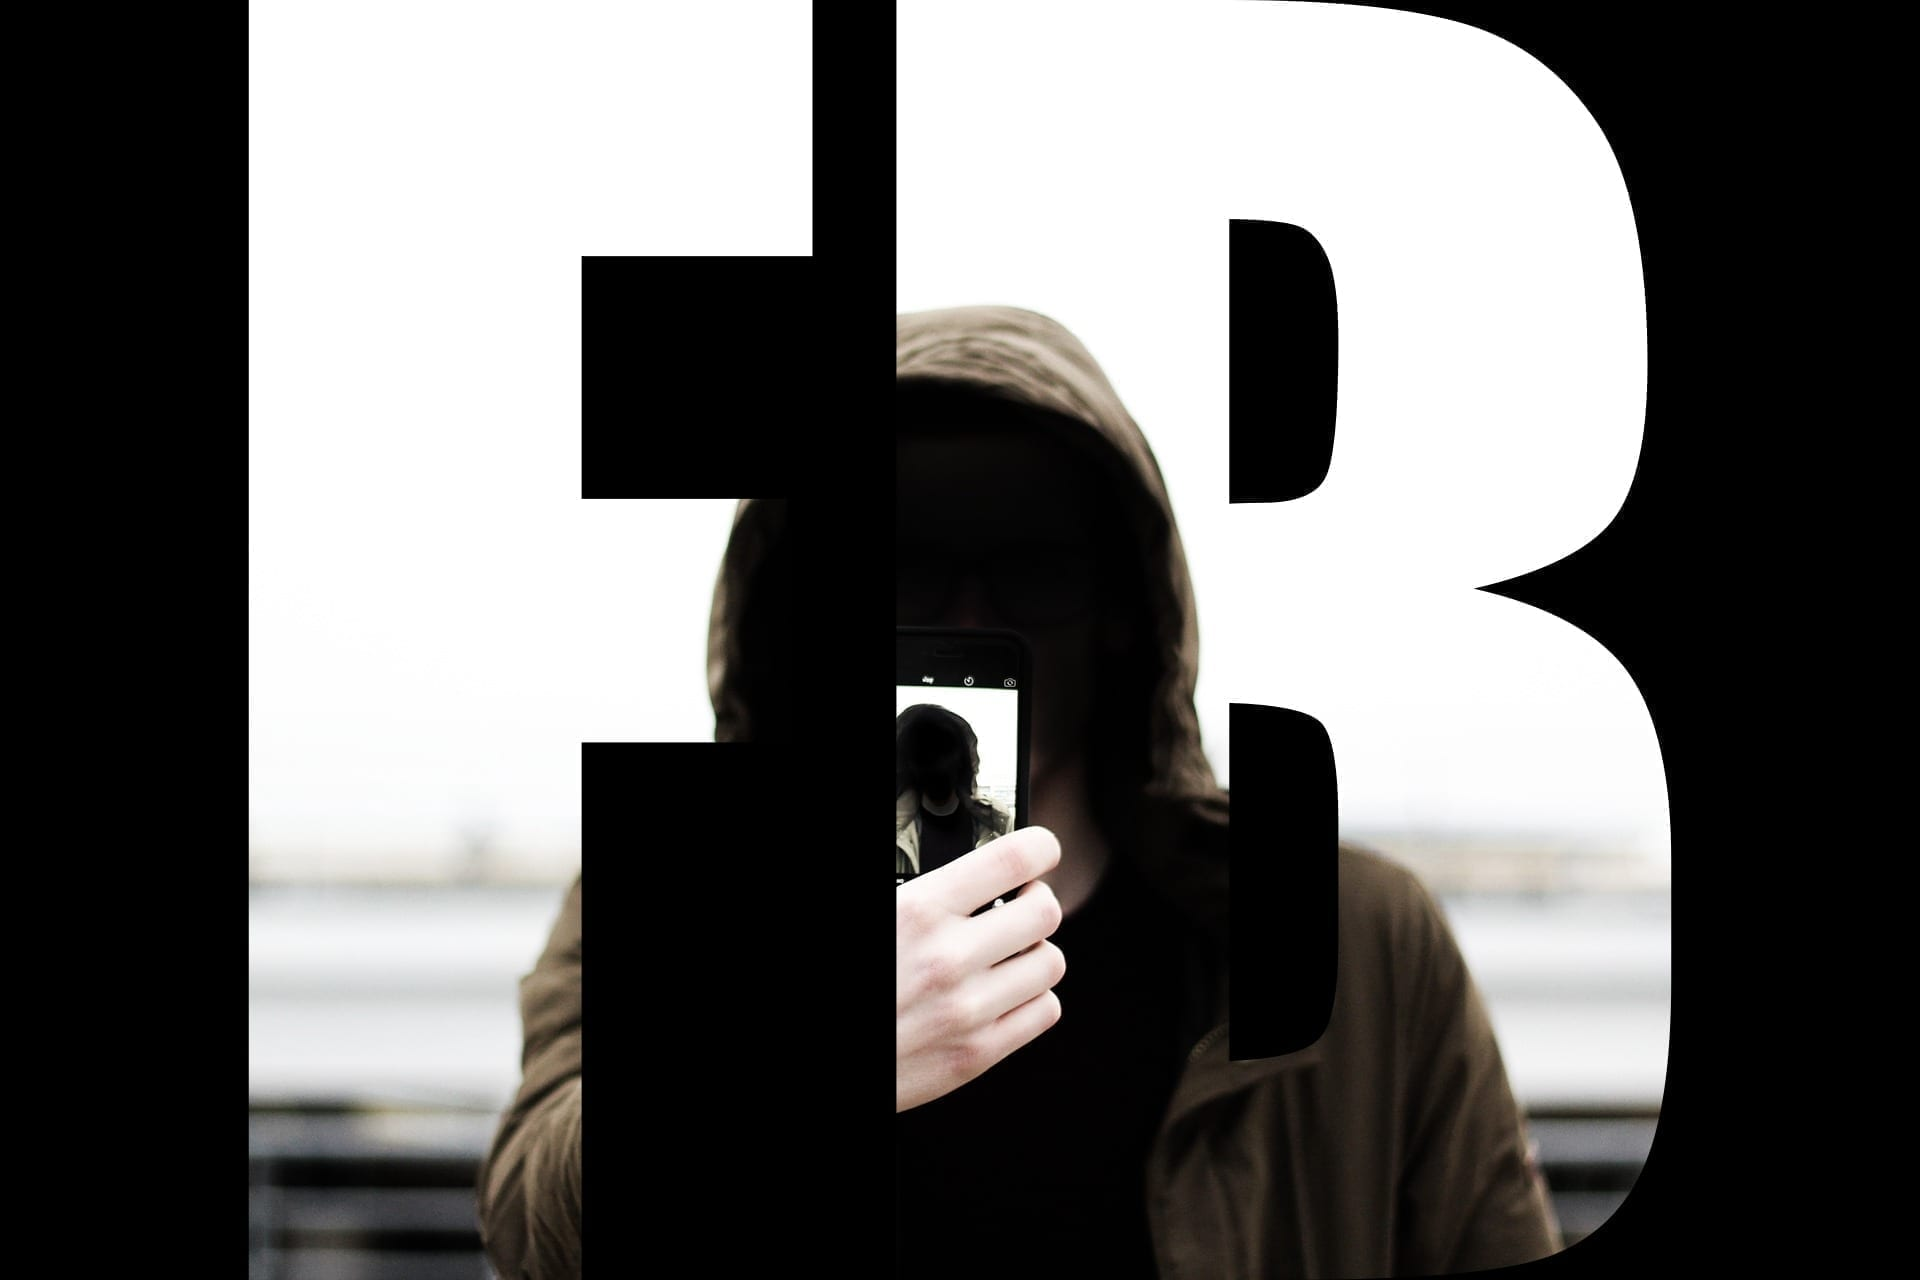 Is your phone spying on you for Facebook?